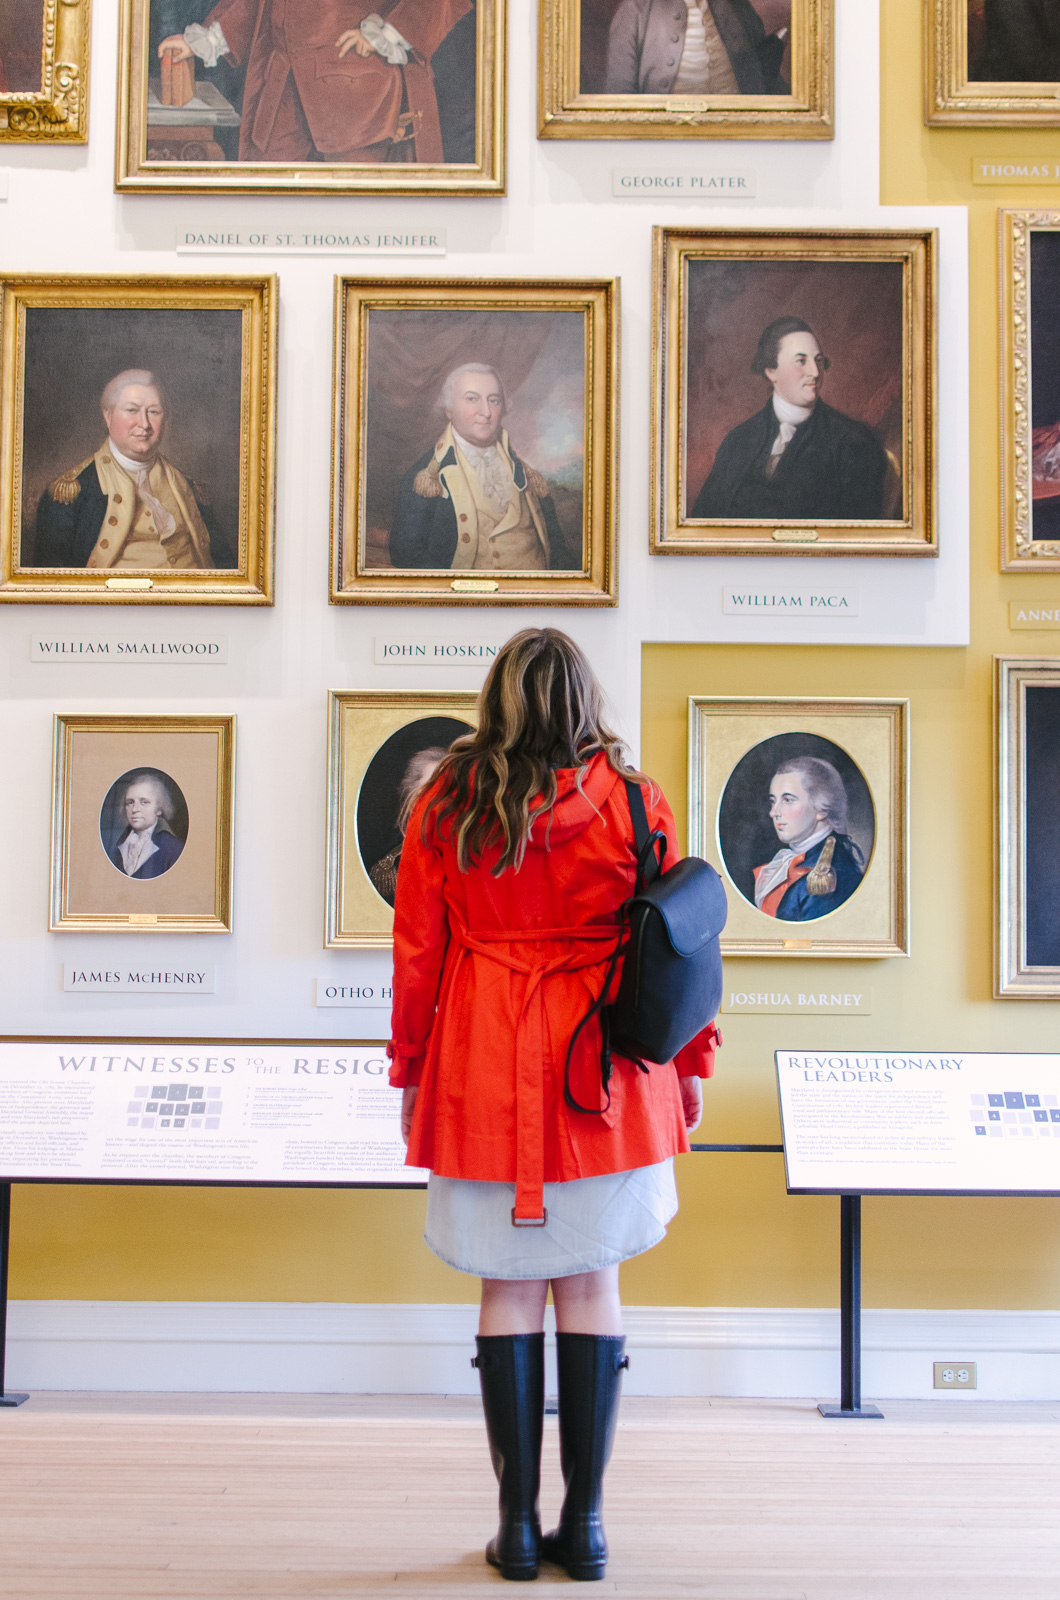 Maryland State House tour | Don't miss the full Annapolis Weekend Guide: where to eat, what to do, and where to stay! | bylaurenm.com